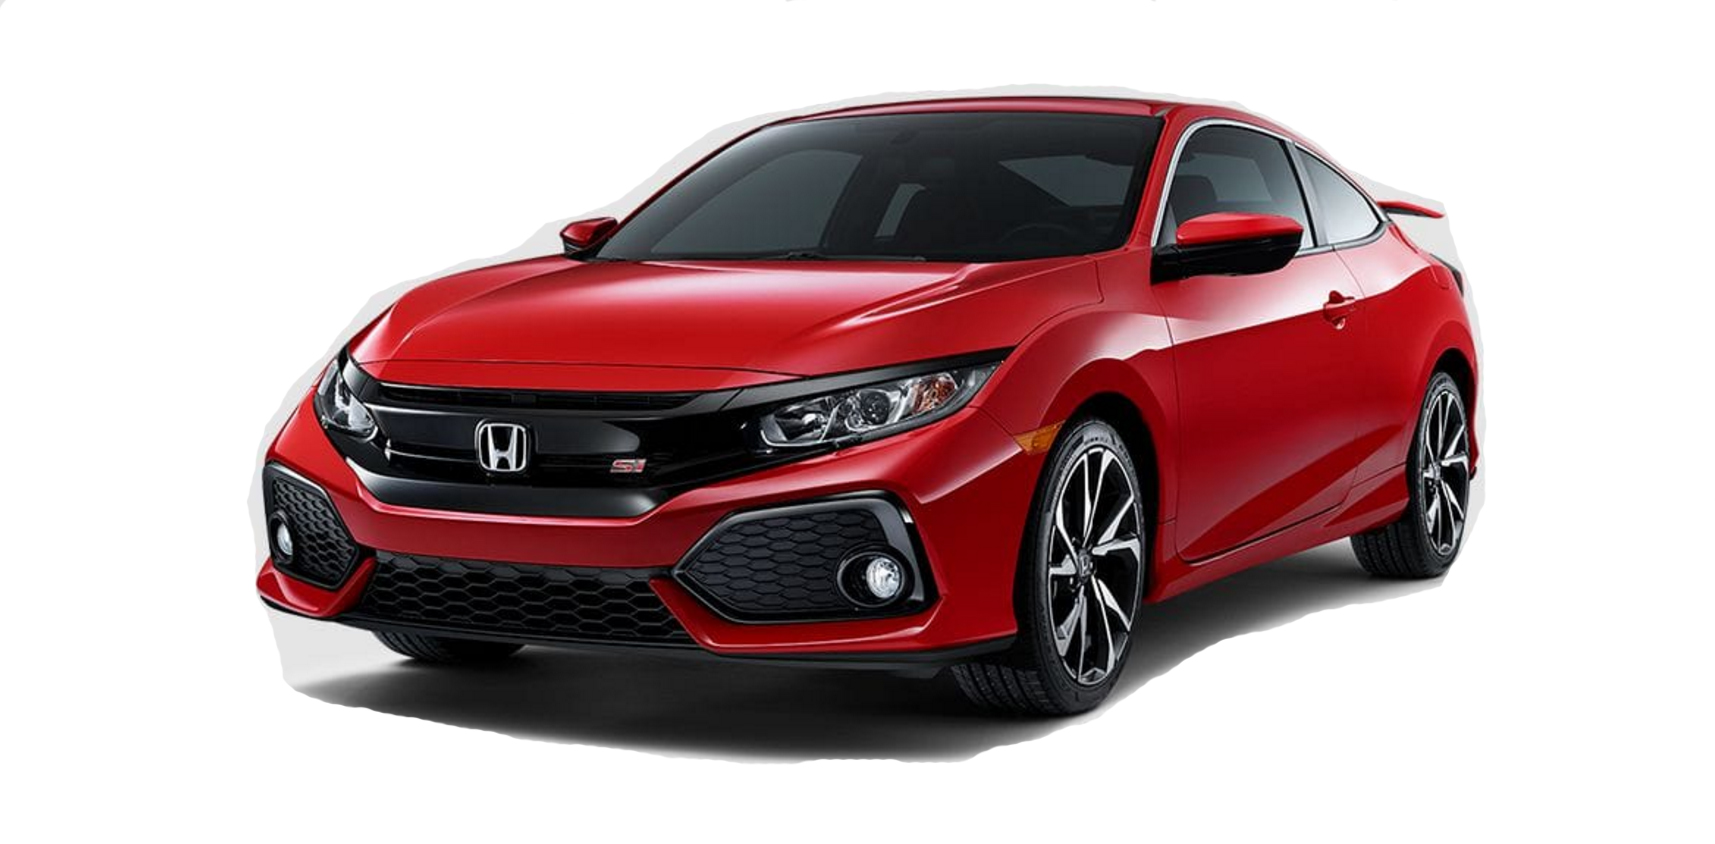 Honda Civic Si Coupe For Sale in Sandy